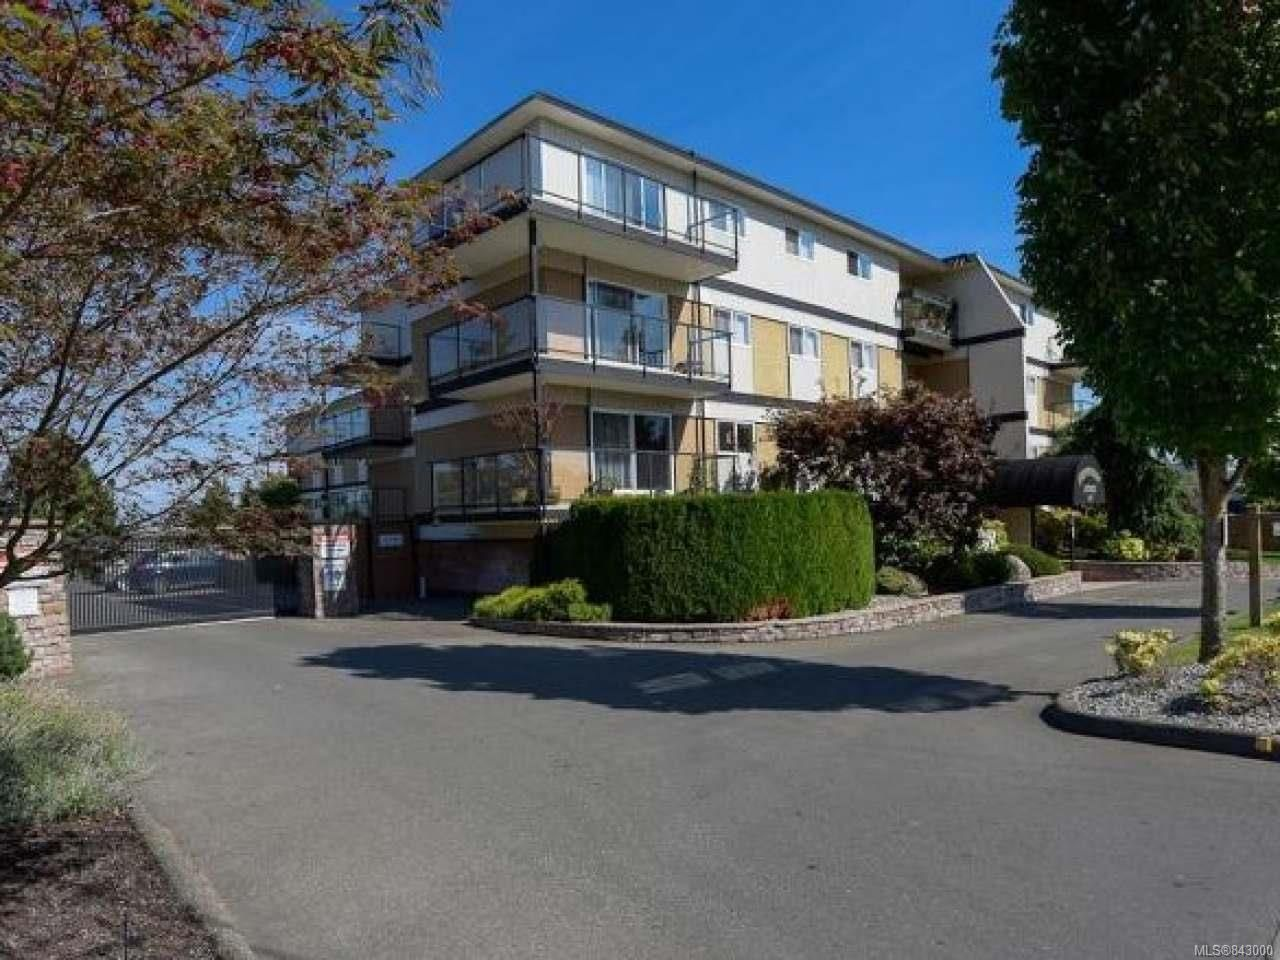 Photo 12: Photos: 405 255 W Hirst Ave in PARKSVILLE: PQ Parksville Condo for sale (Parksville/Qualicum)  : MLS®# 843000